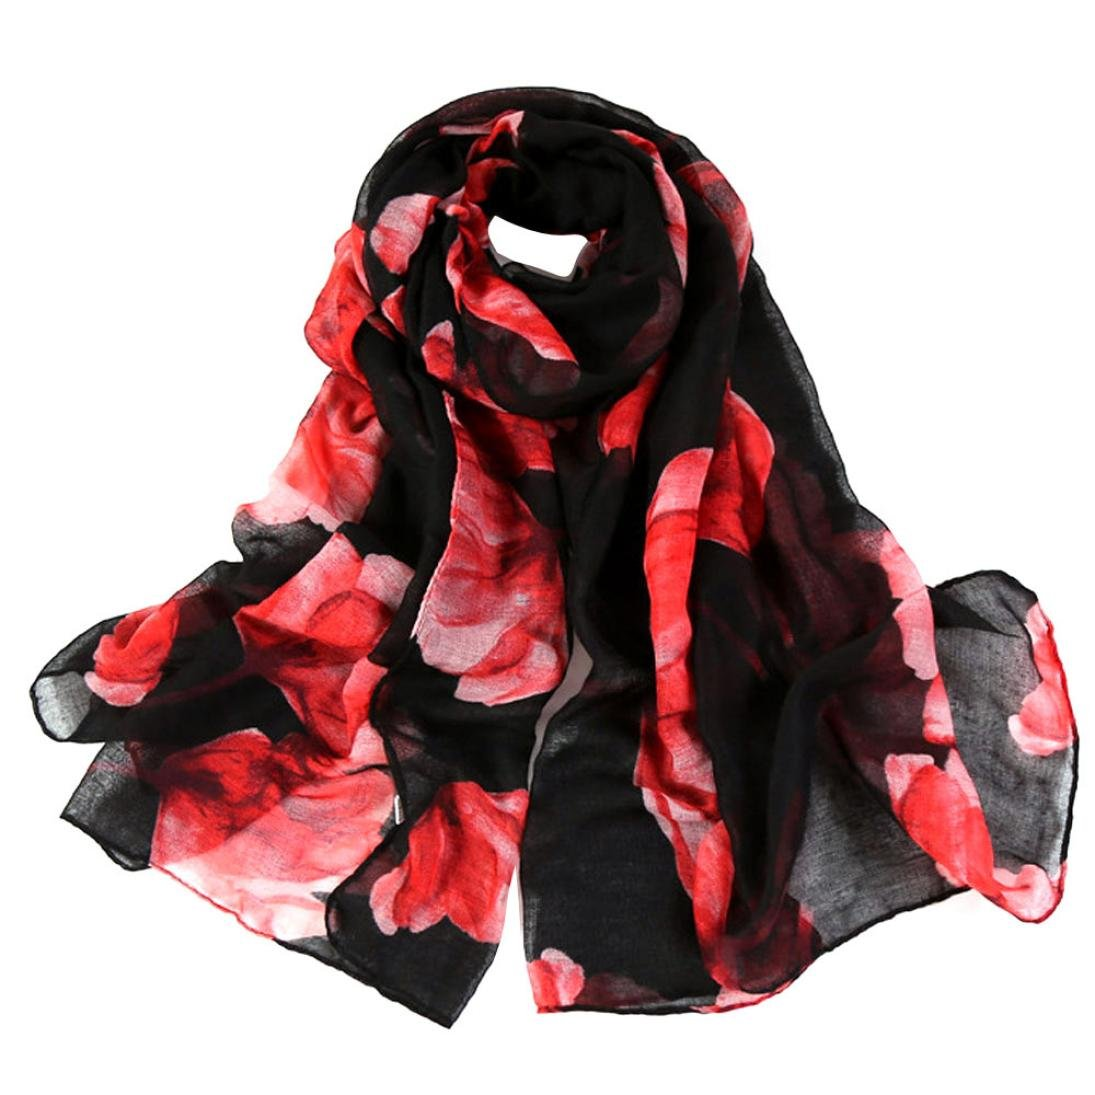 iHPH7 Lightweight Scarf, Fashion Women Long Soft Wrap Shawl Voile Scarf Scarves at Amazon Womens Clothing store: